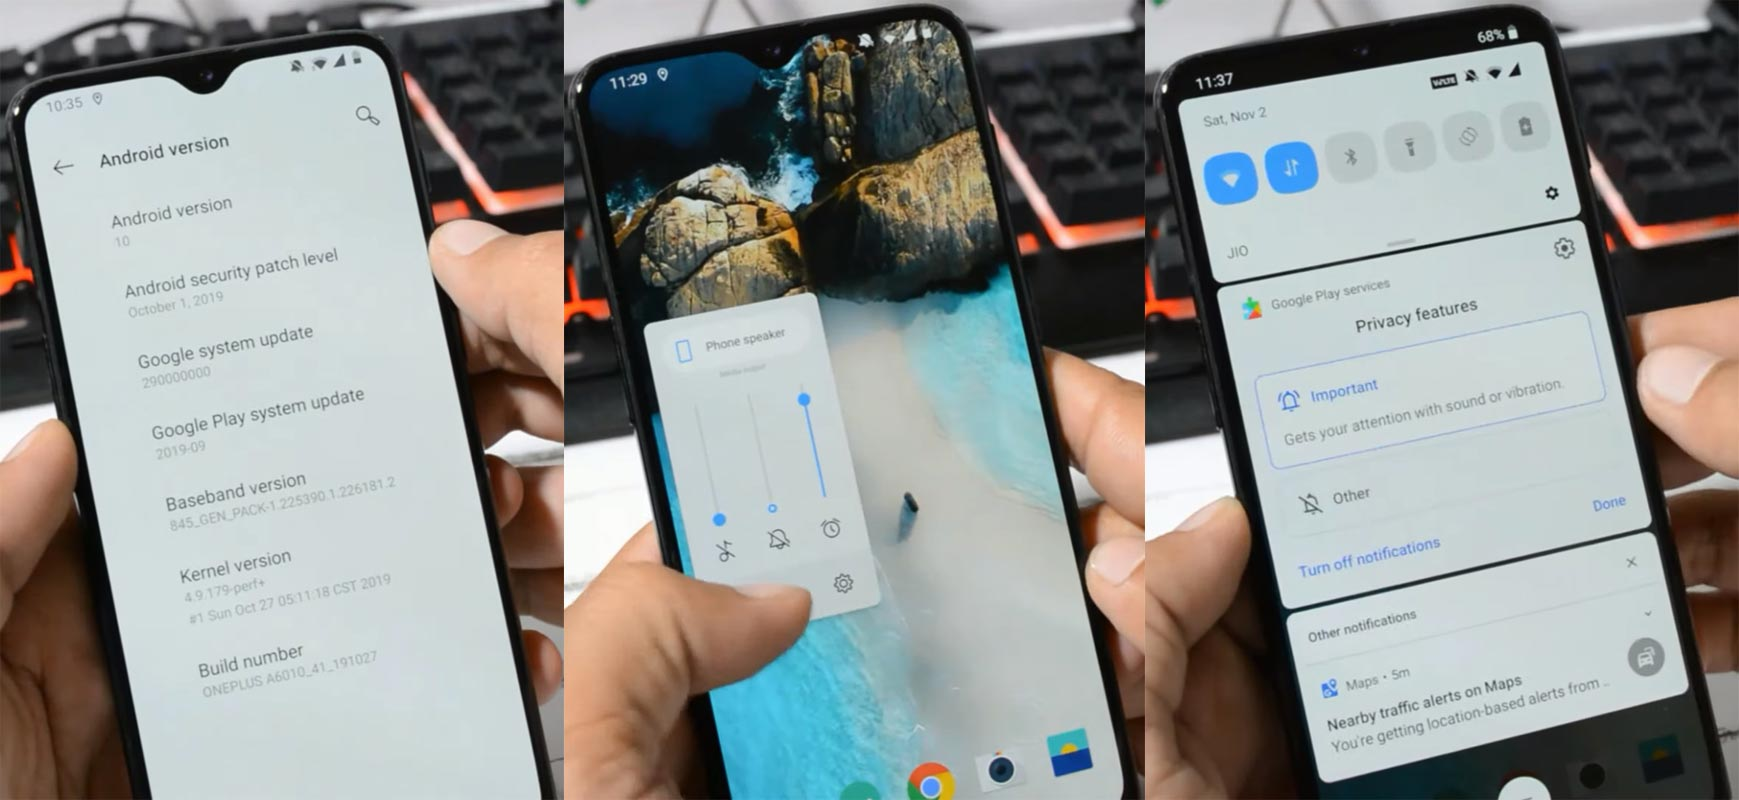 OnePlus 6T Android 10 Screenshots